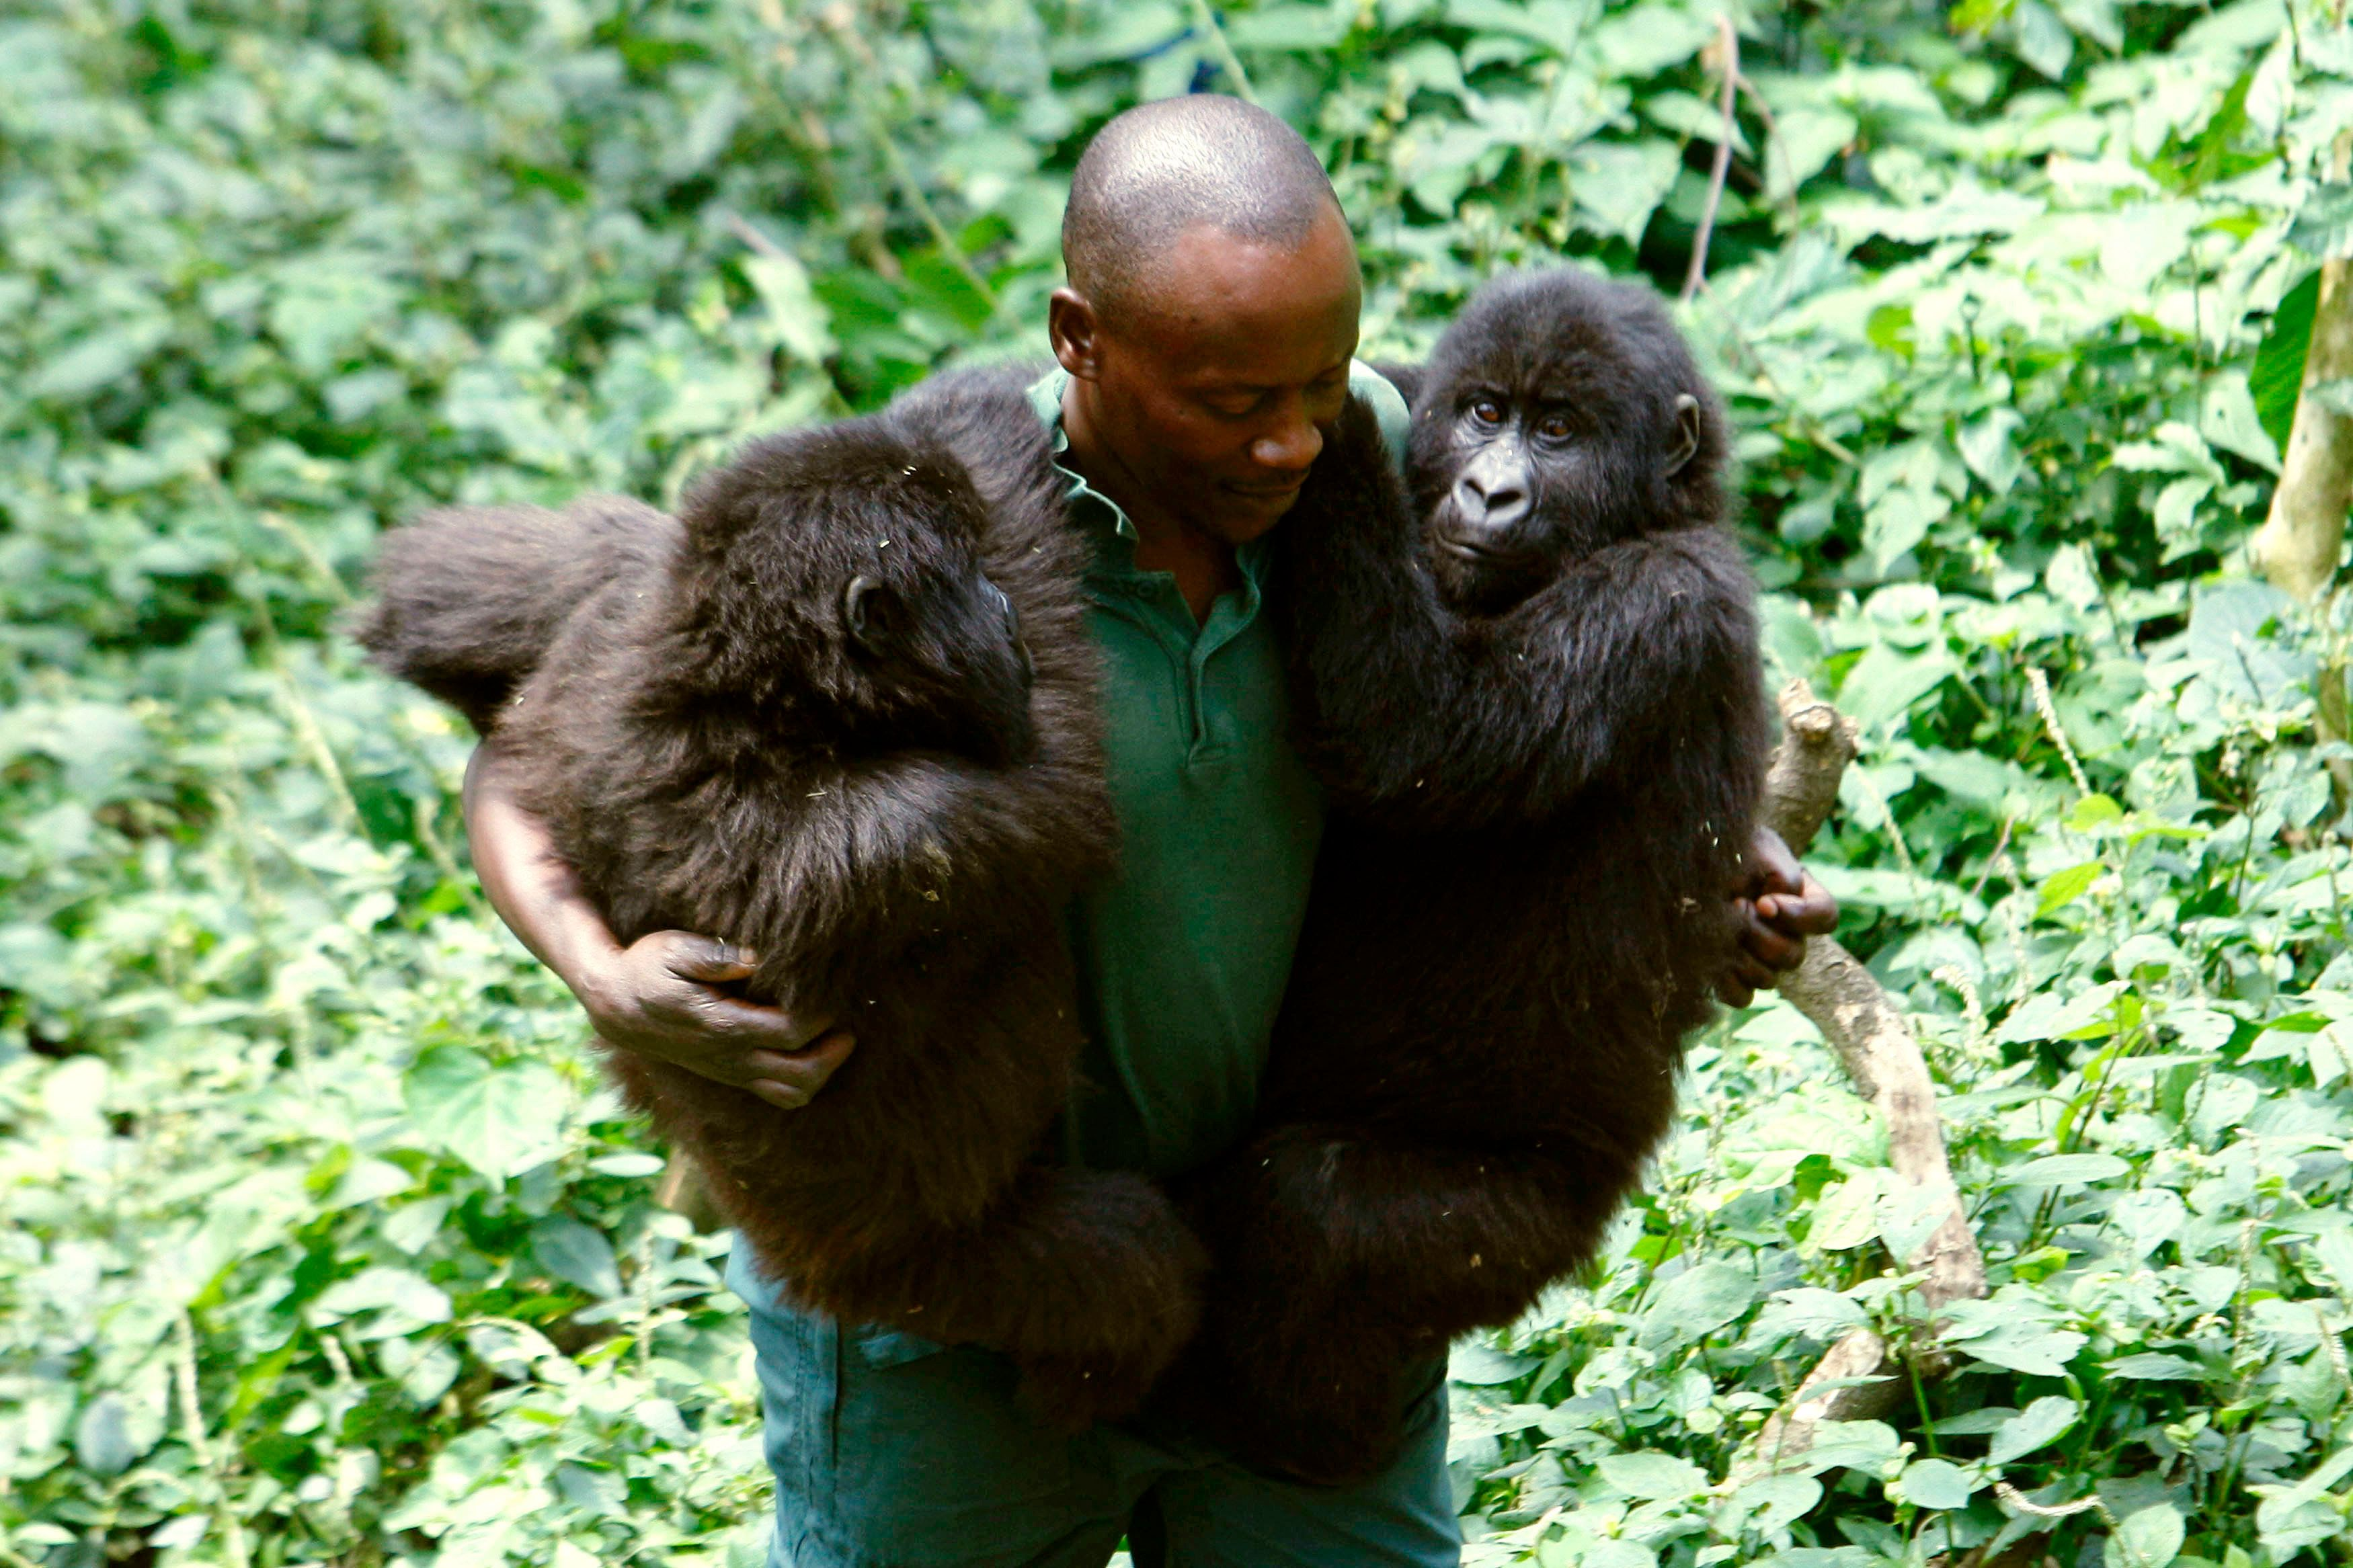 Five park rangers, driver killed in DR Congo's Virunga wildlife sanctuary